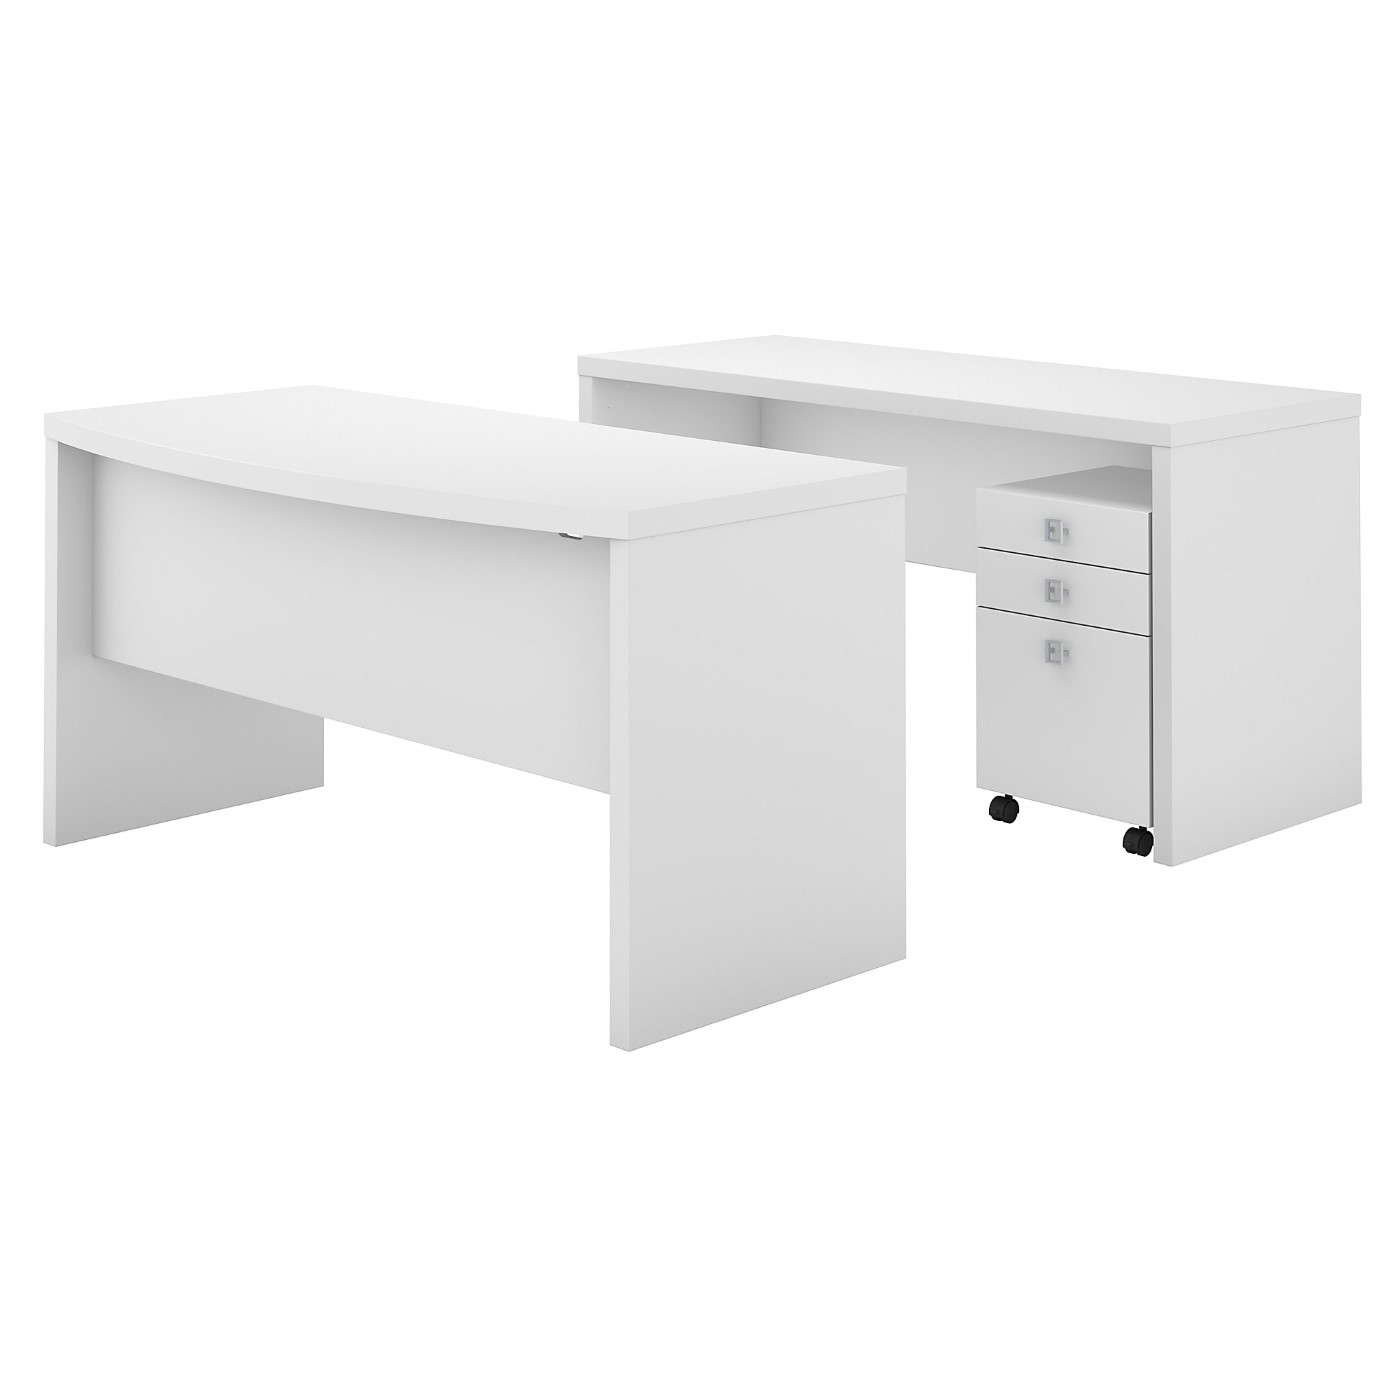 OFFICE BY KATHY IRELAND® ECHO BOW FRONT DESK AND CREDENZA WITH MOBILE FILE CABINET. FREE SHIPPING SALE DEDUCT 10% MORE ENTER '10percent' IN COUPON CODE BOX WHILE CHECKING OUT.